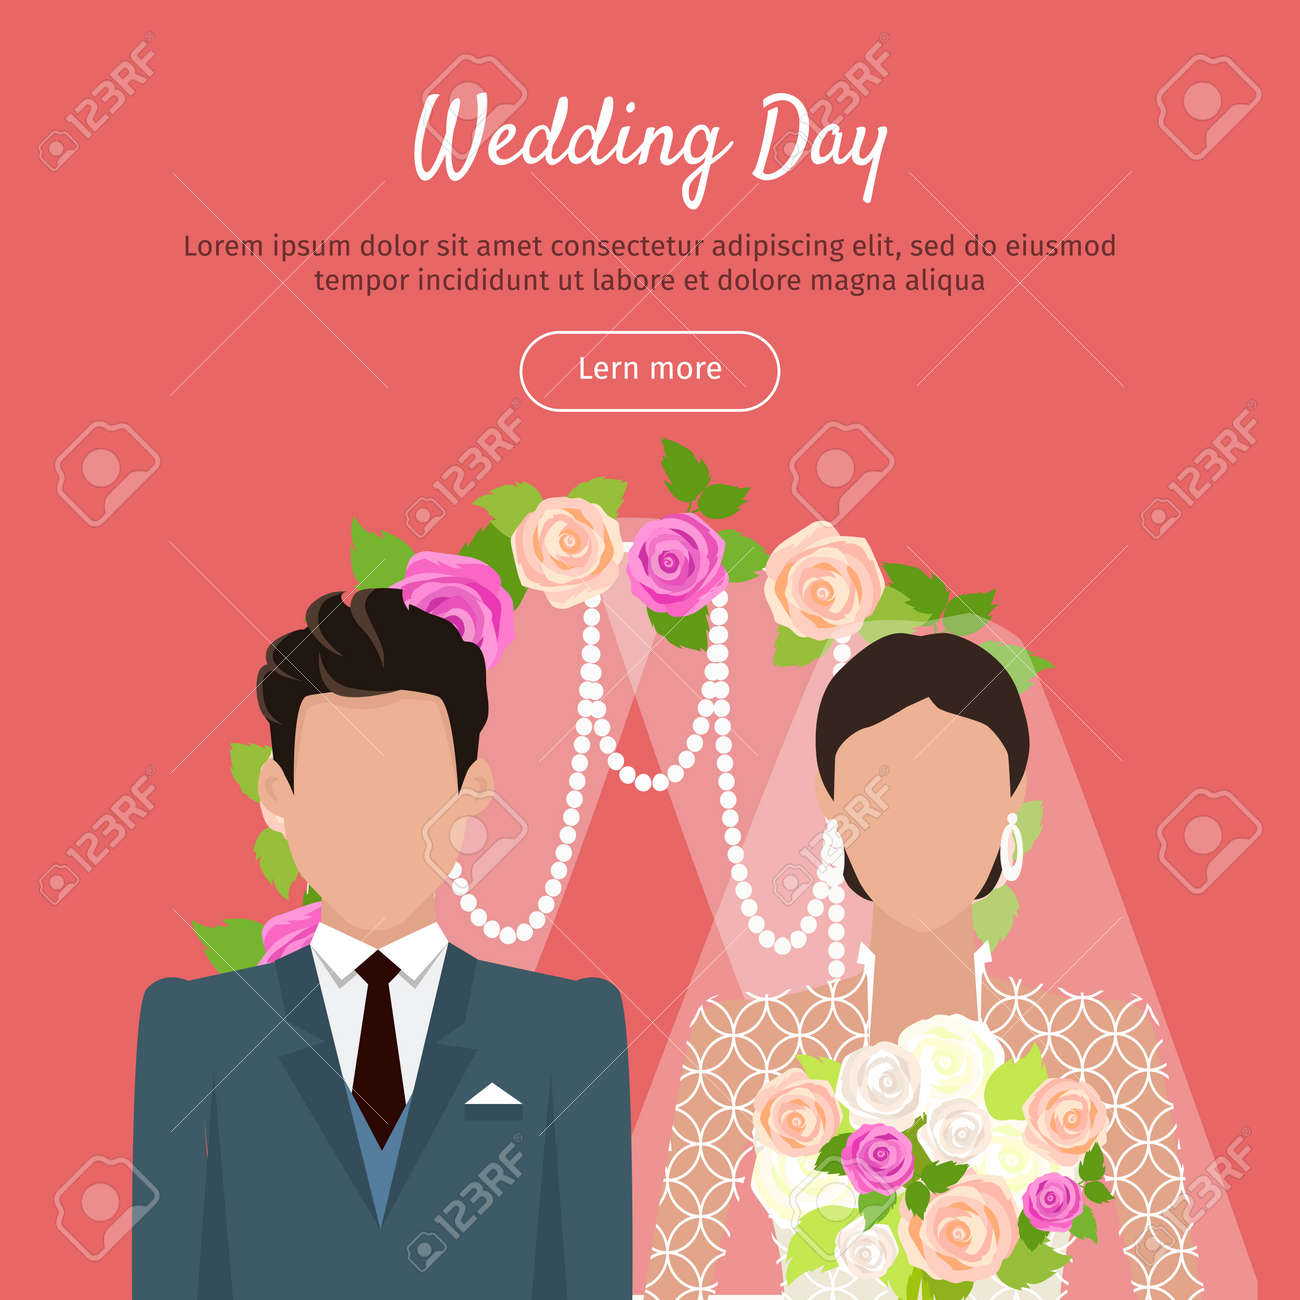 Wedding Day Web Banner Newlyweds Couple Design Royalty Free Cliparts Vectors And Stock Illustration Image 70458850